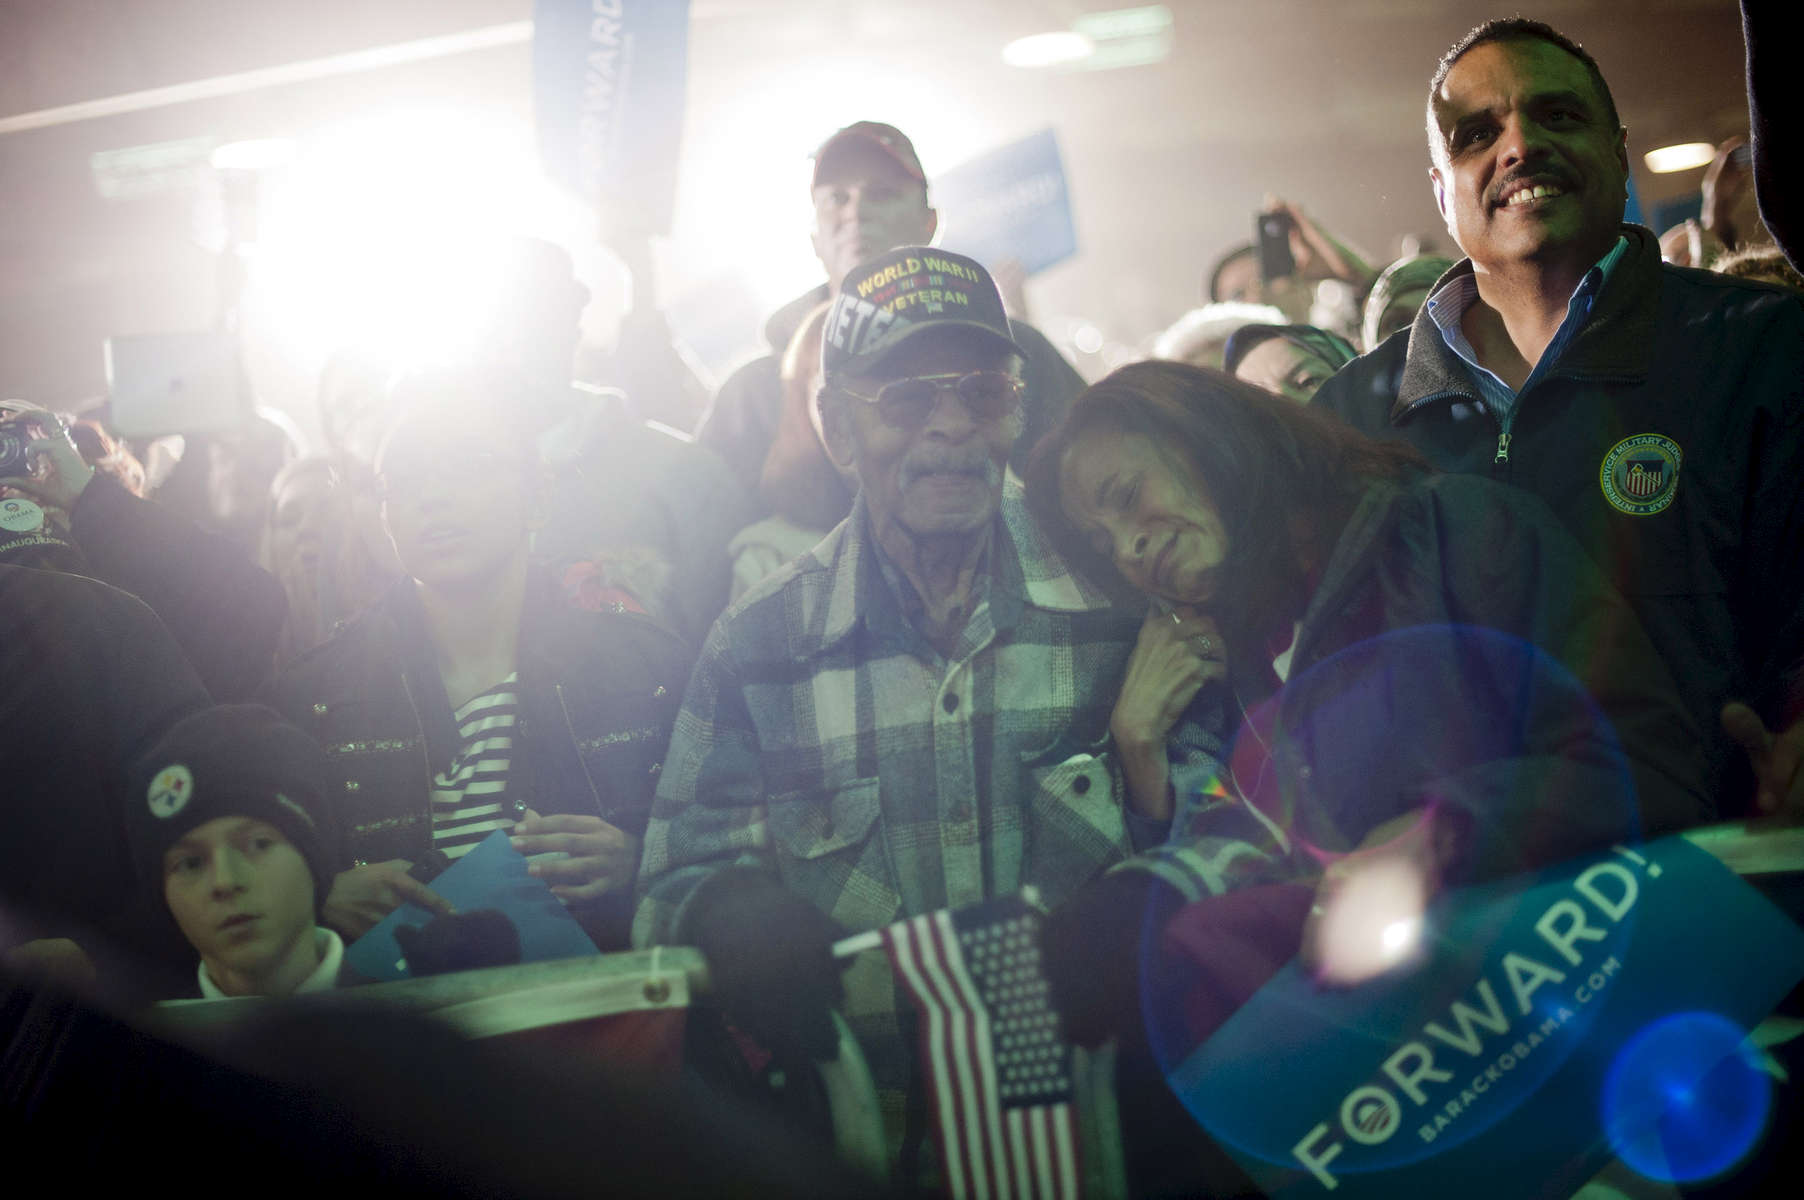 November 2, 2012 - Hilliard, OH: A woman weeps as she embraces her father, a veteran, during a campaign event for President Barack Obama in the small town of Hilliard, OH a few days before the 2012 election.  (Scout Tufankjian for Obama for America/Polaris)